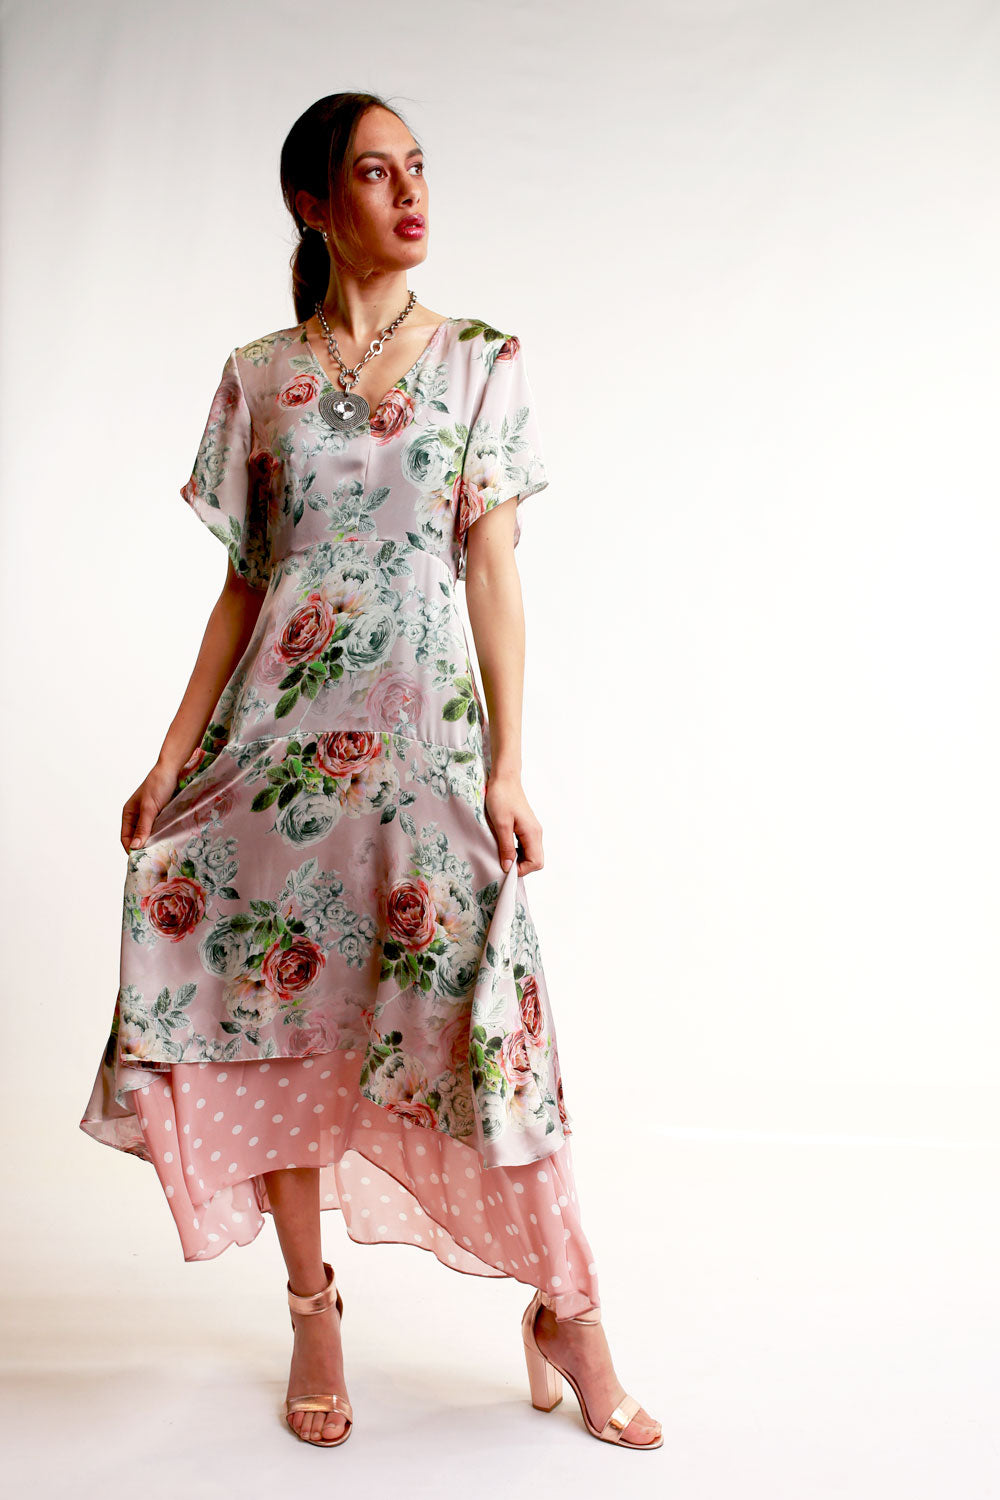 Annah Stretton Pink floral Mother of the bride event dress